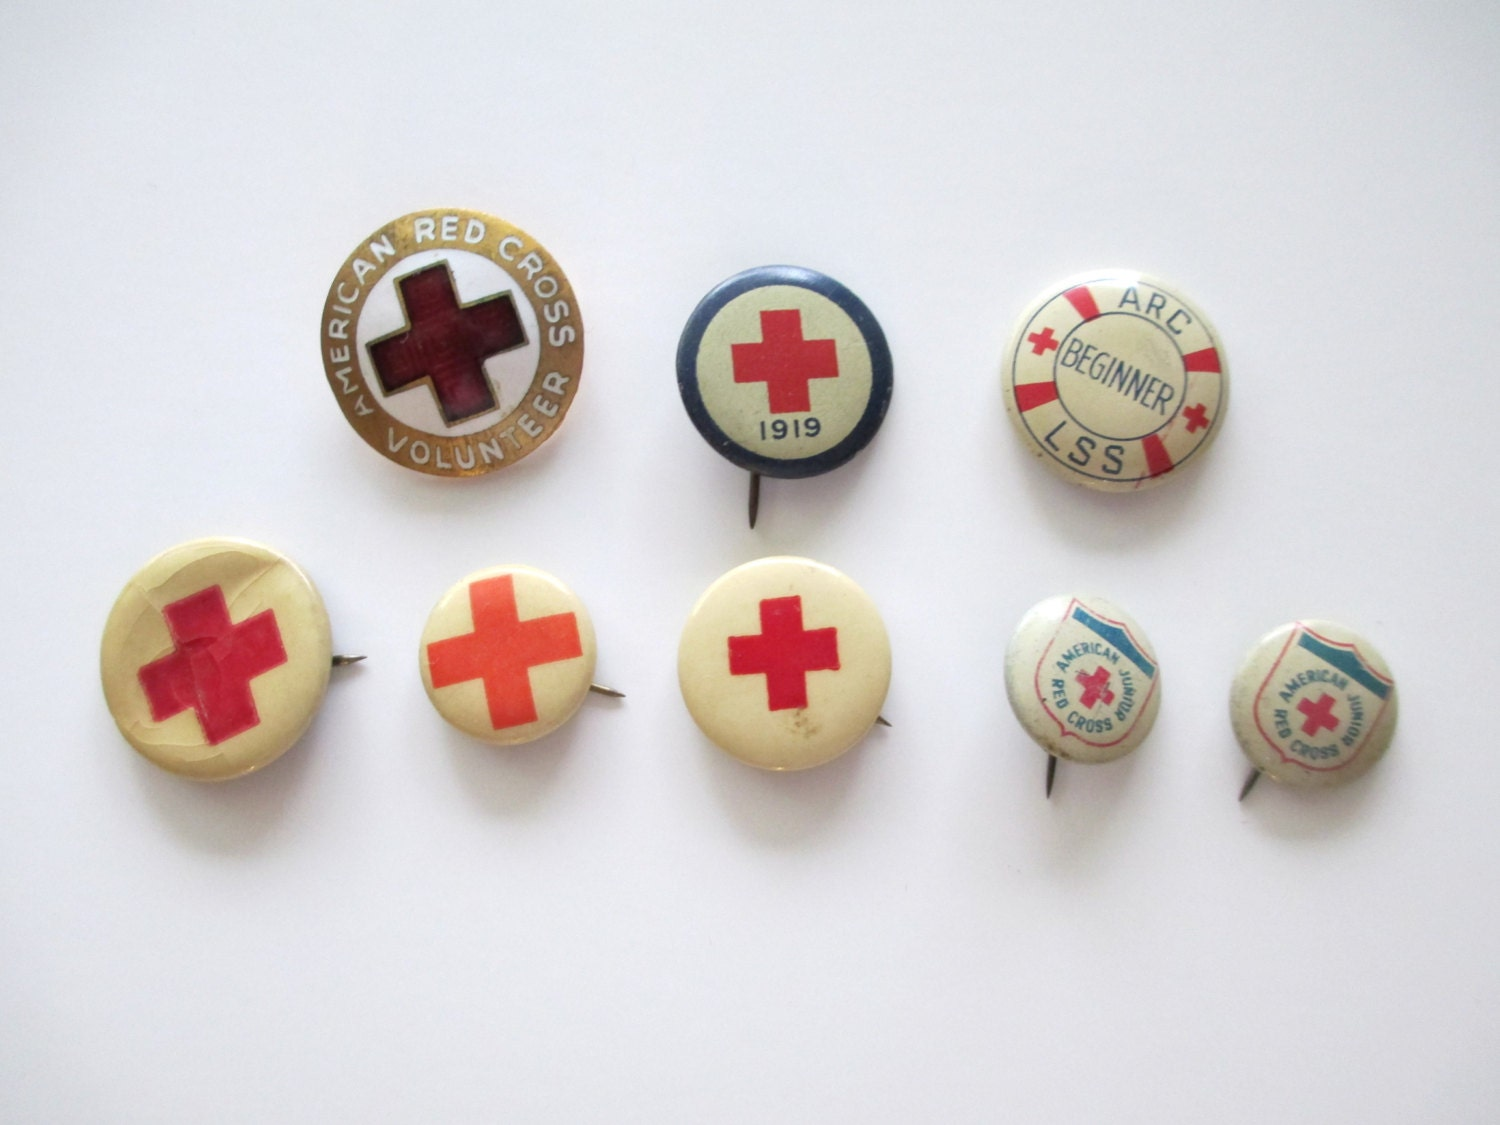 Vintage AMERICAN RED CROSS Pins Lot Of 8 Greenduck Co. - TREASUREandSUCH